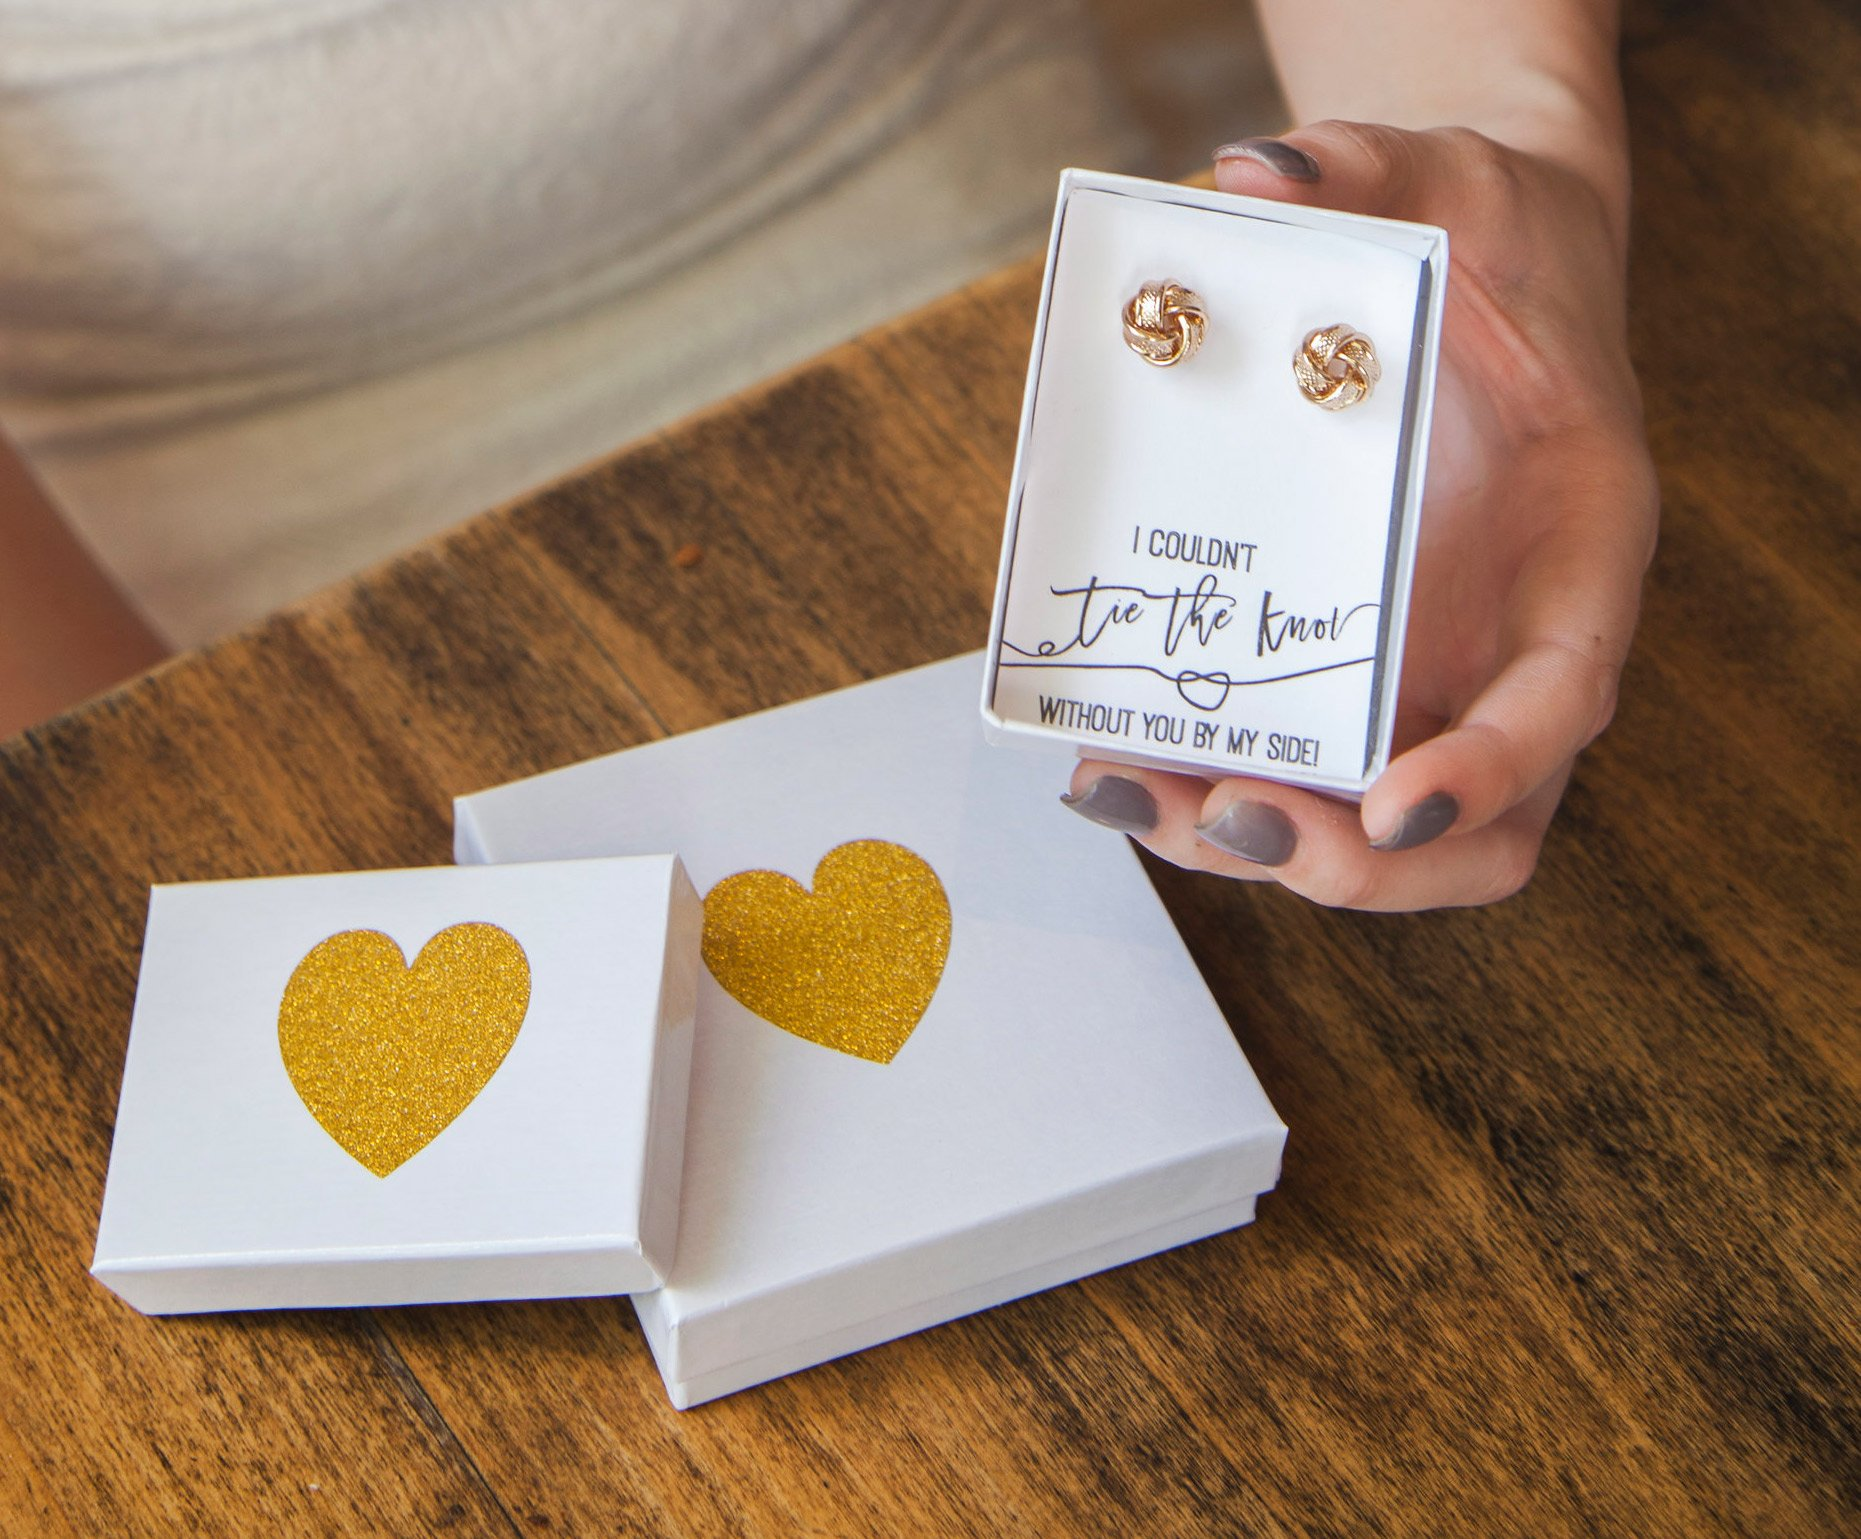 Bridesmaids Gifts - Silver Tie the Knot Earrings with Gift Box - I Can't Tie the Knot Without You Bridesmaid Proposal Earring Set of 1, 3, 4, 5, 6, 7, 8 (Black Note_ Set of 8) by Lemon Honey Jewelry (Image #6)